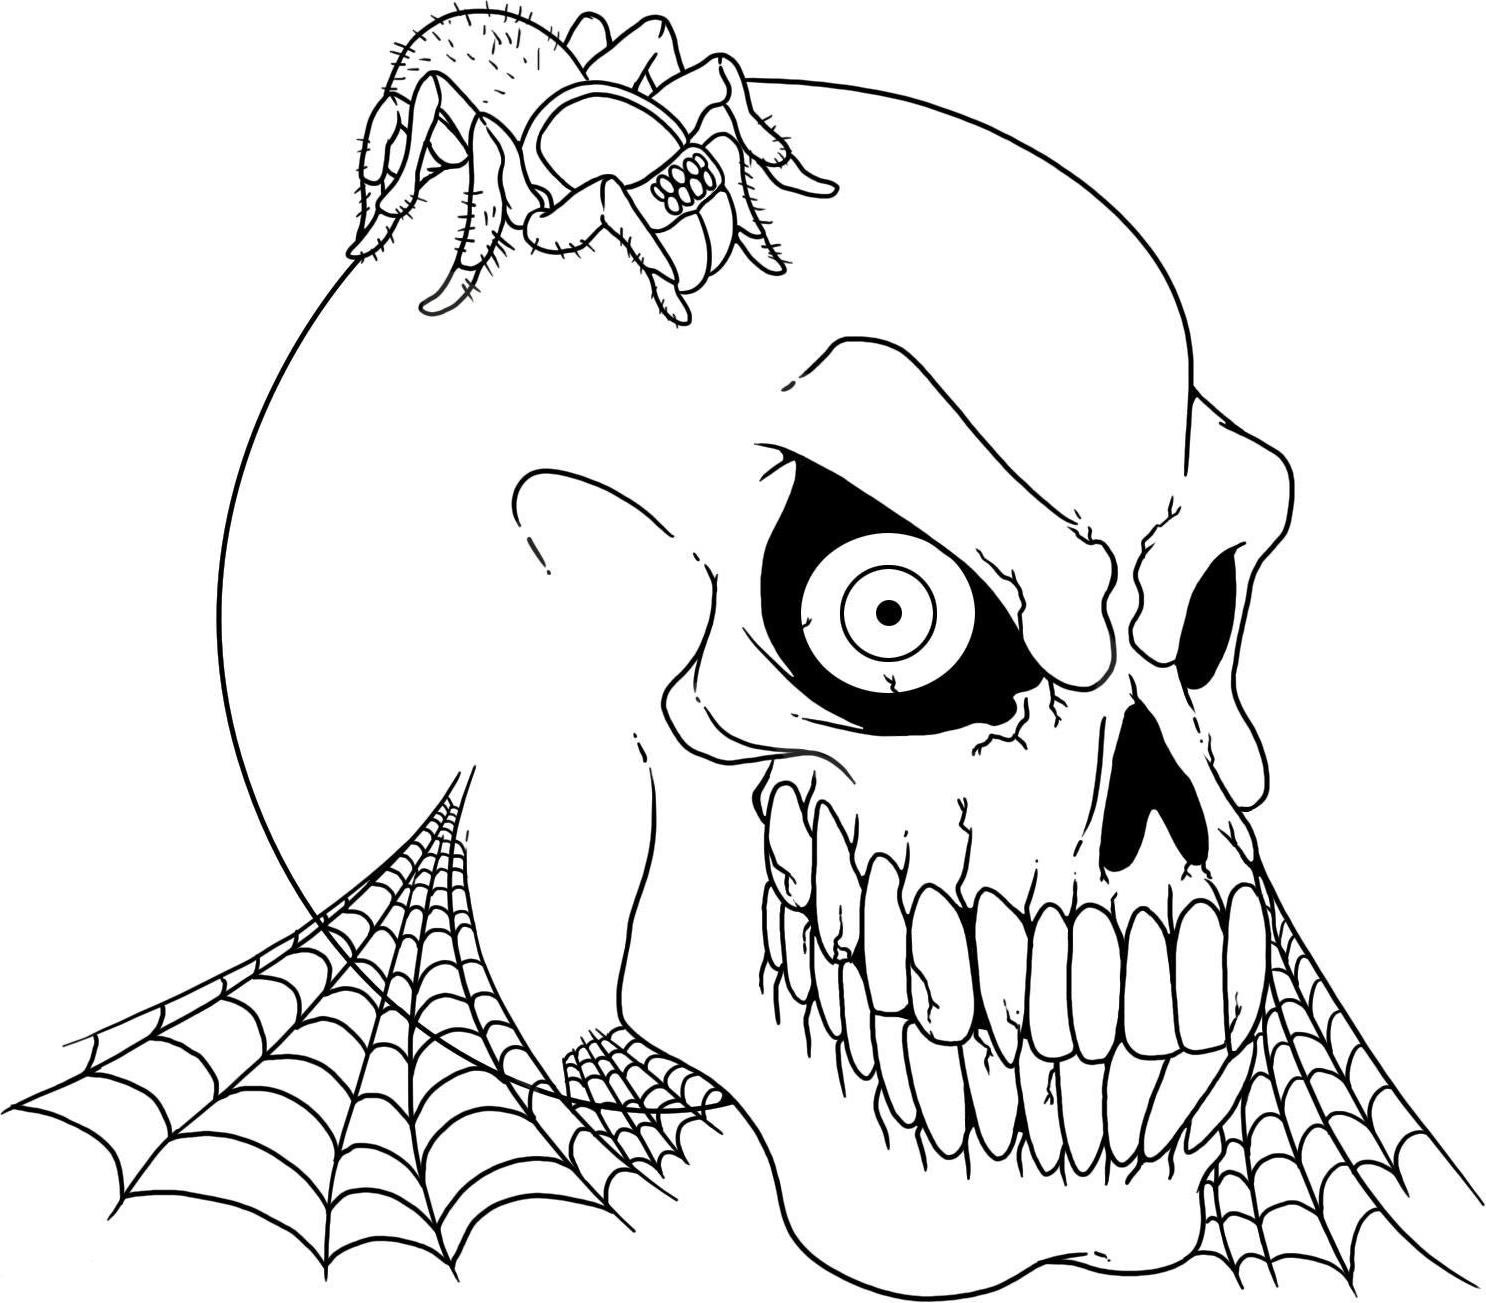 image regarding Free Printable Halloween Coloring Sheets called Absolutely free Printable Halloween Coloring Web pages at